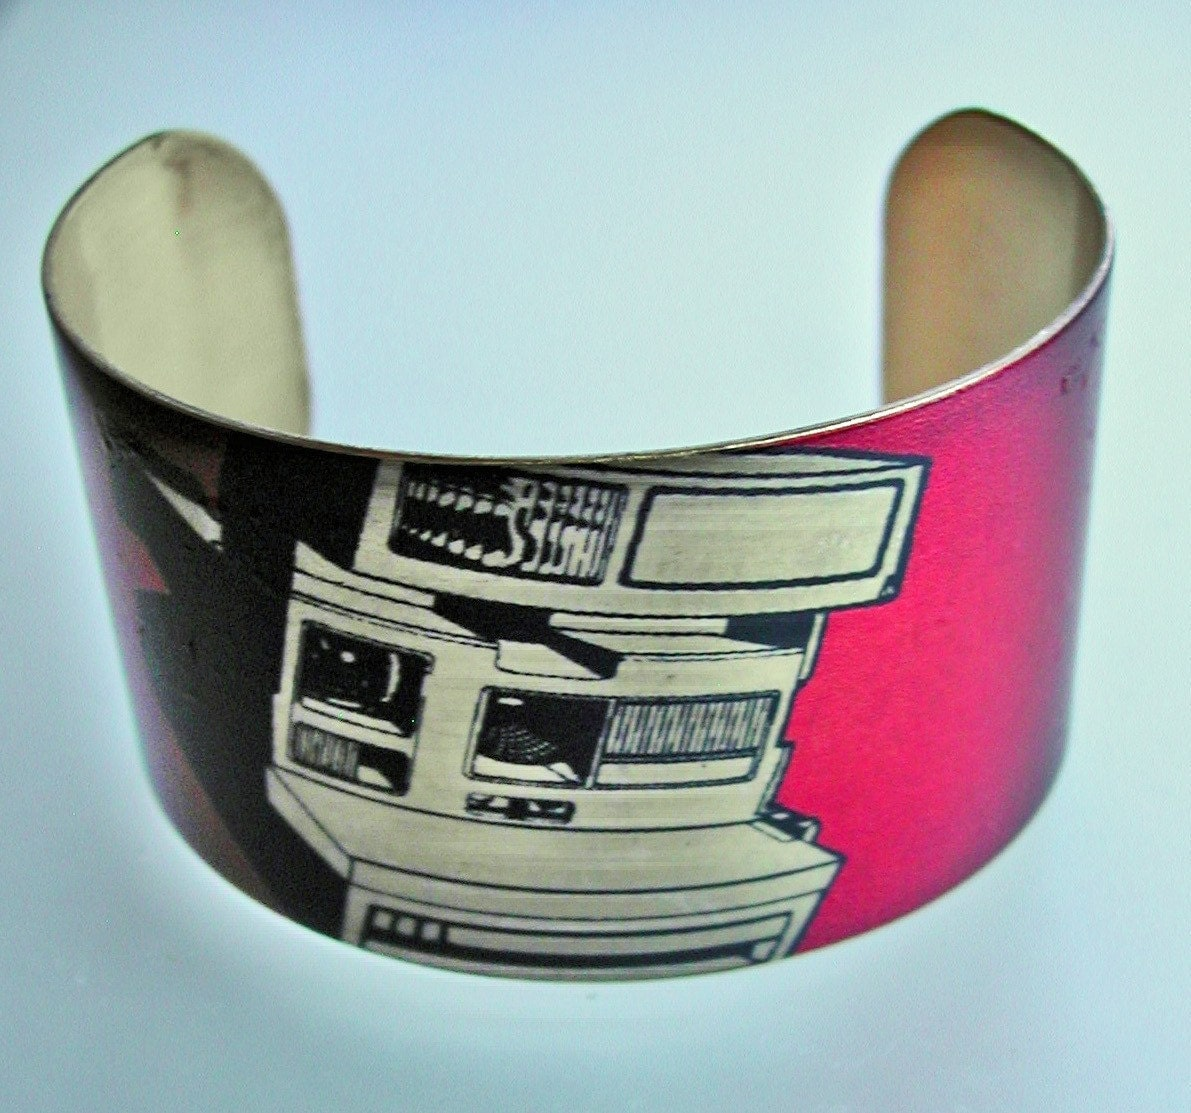 Polaroid Camera vintage style brass cuff bracelet FREE SHIPPING WORLDWIDE